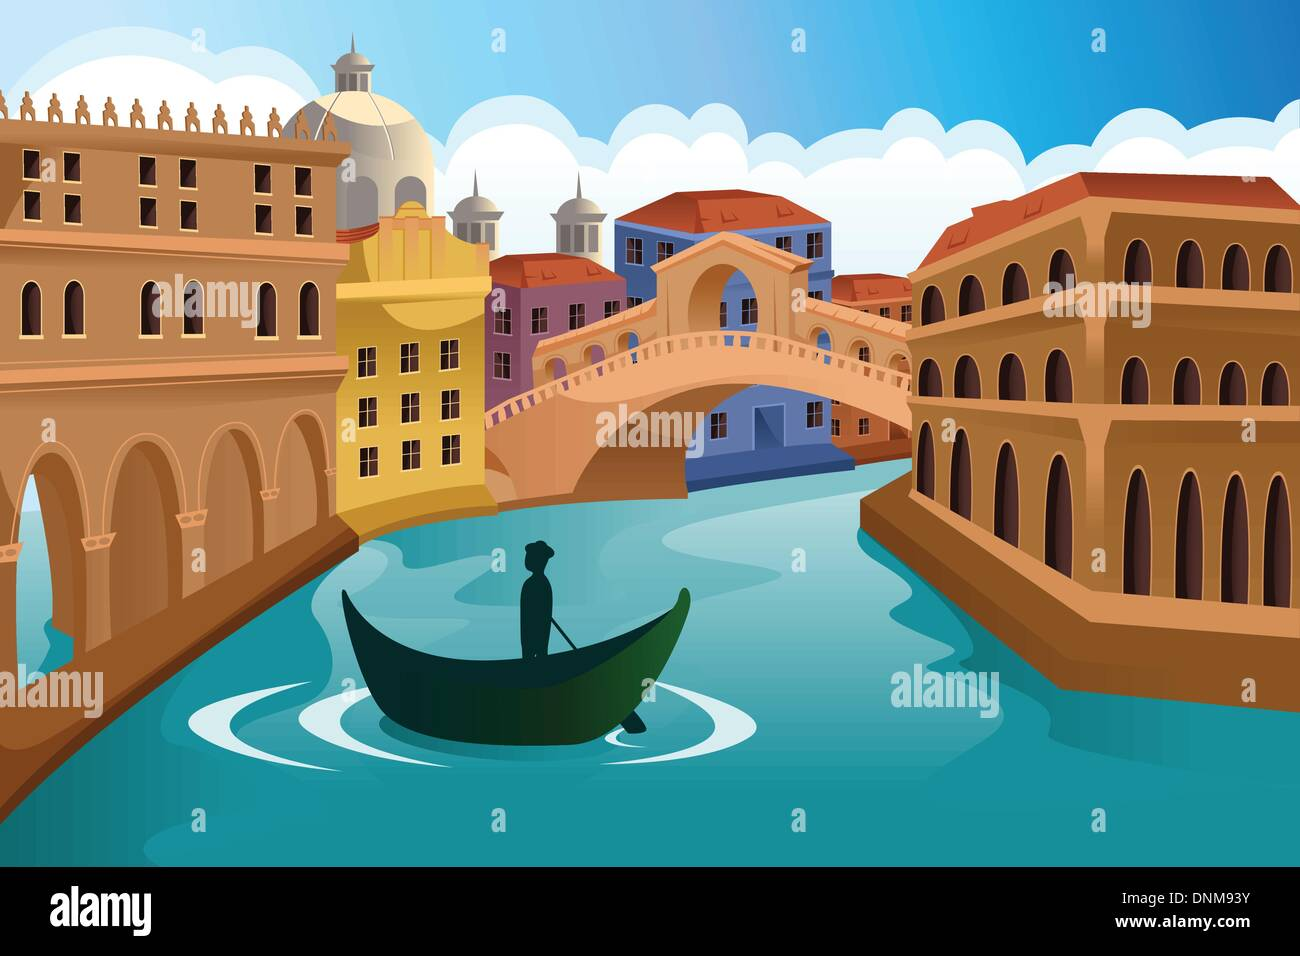 A vector illustration of a European city scene - Stock Vector